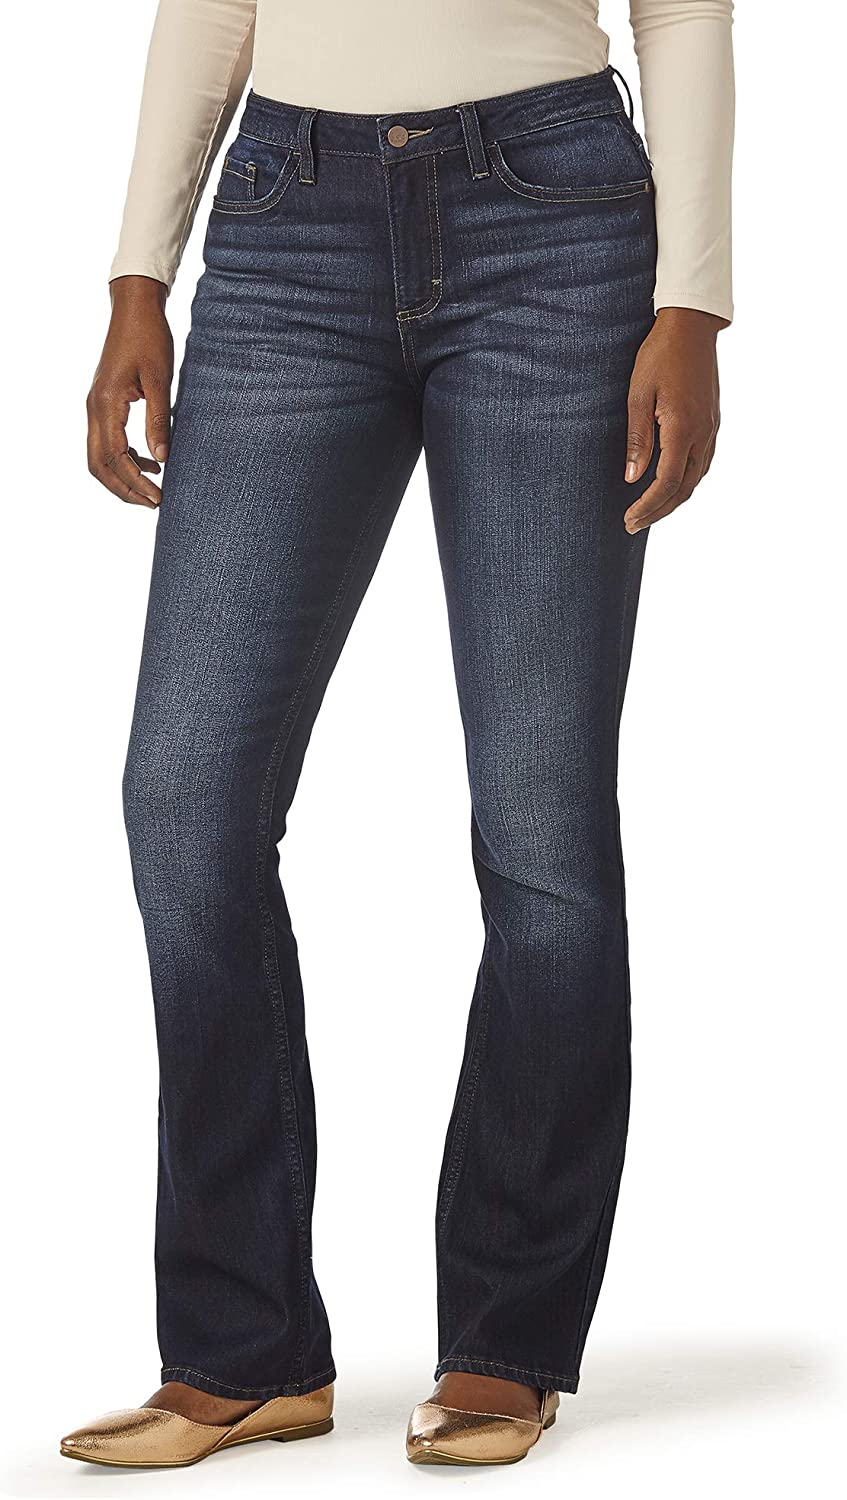 Riders by Lee Indigo Women's store Sales for sale Jean Midrise Bootcut